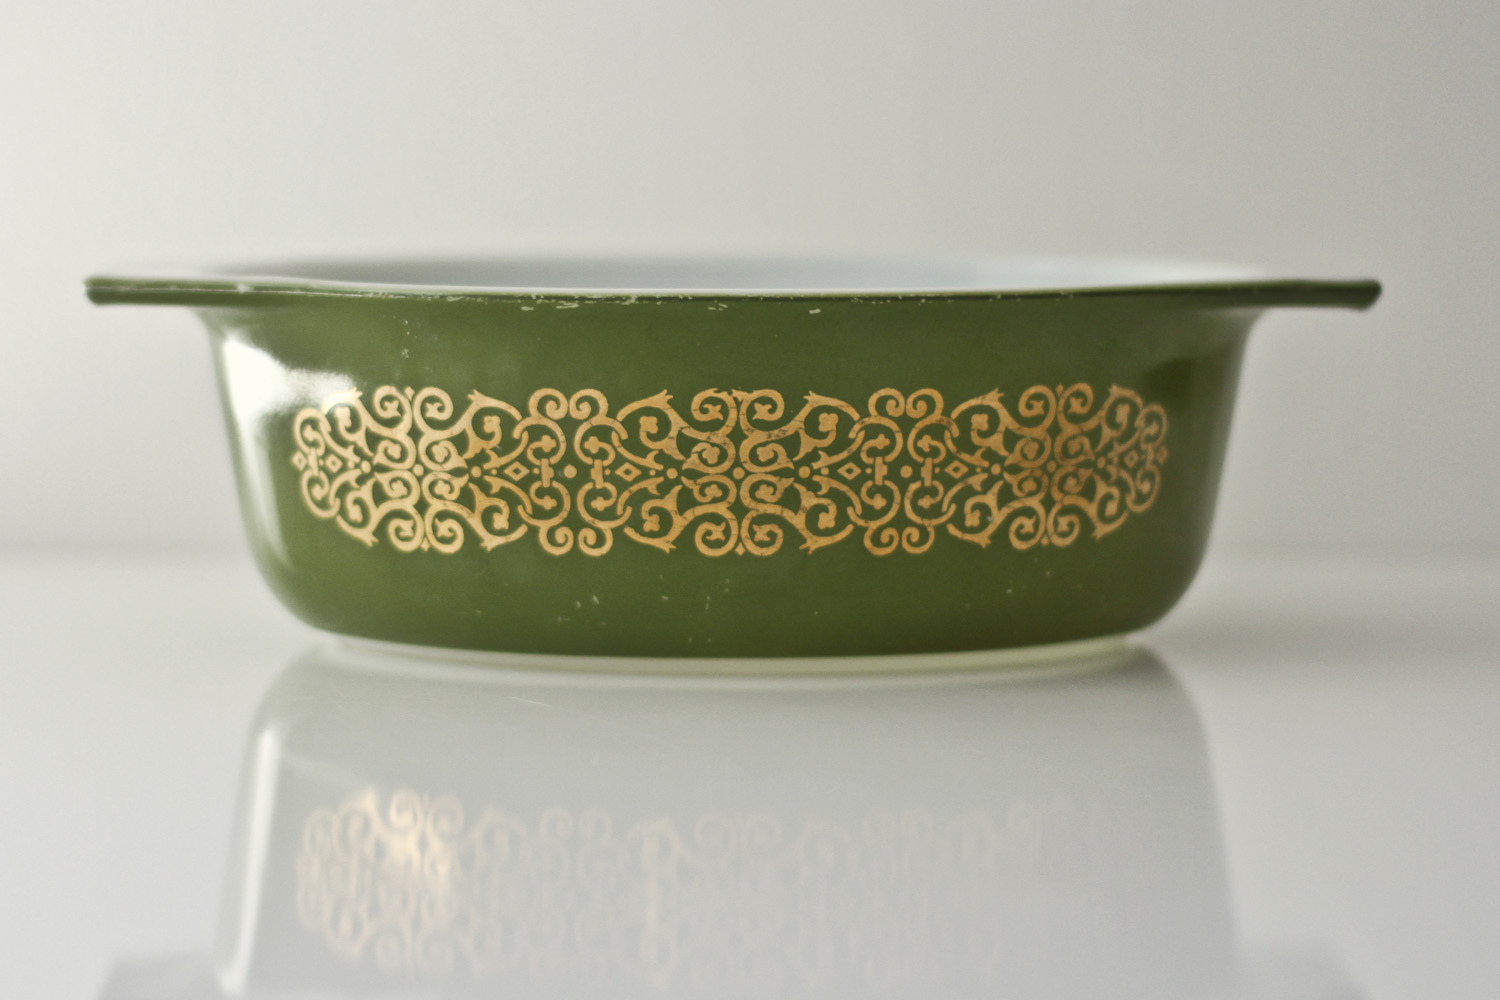 Thrift Store Finds: More Vintage Pyrex// Thrifted